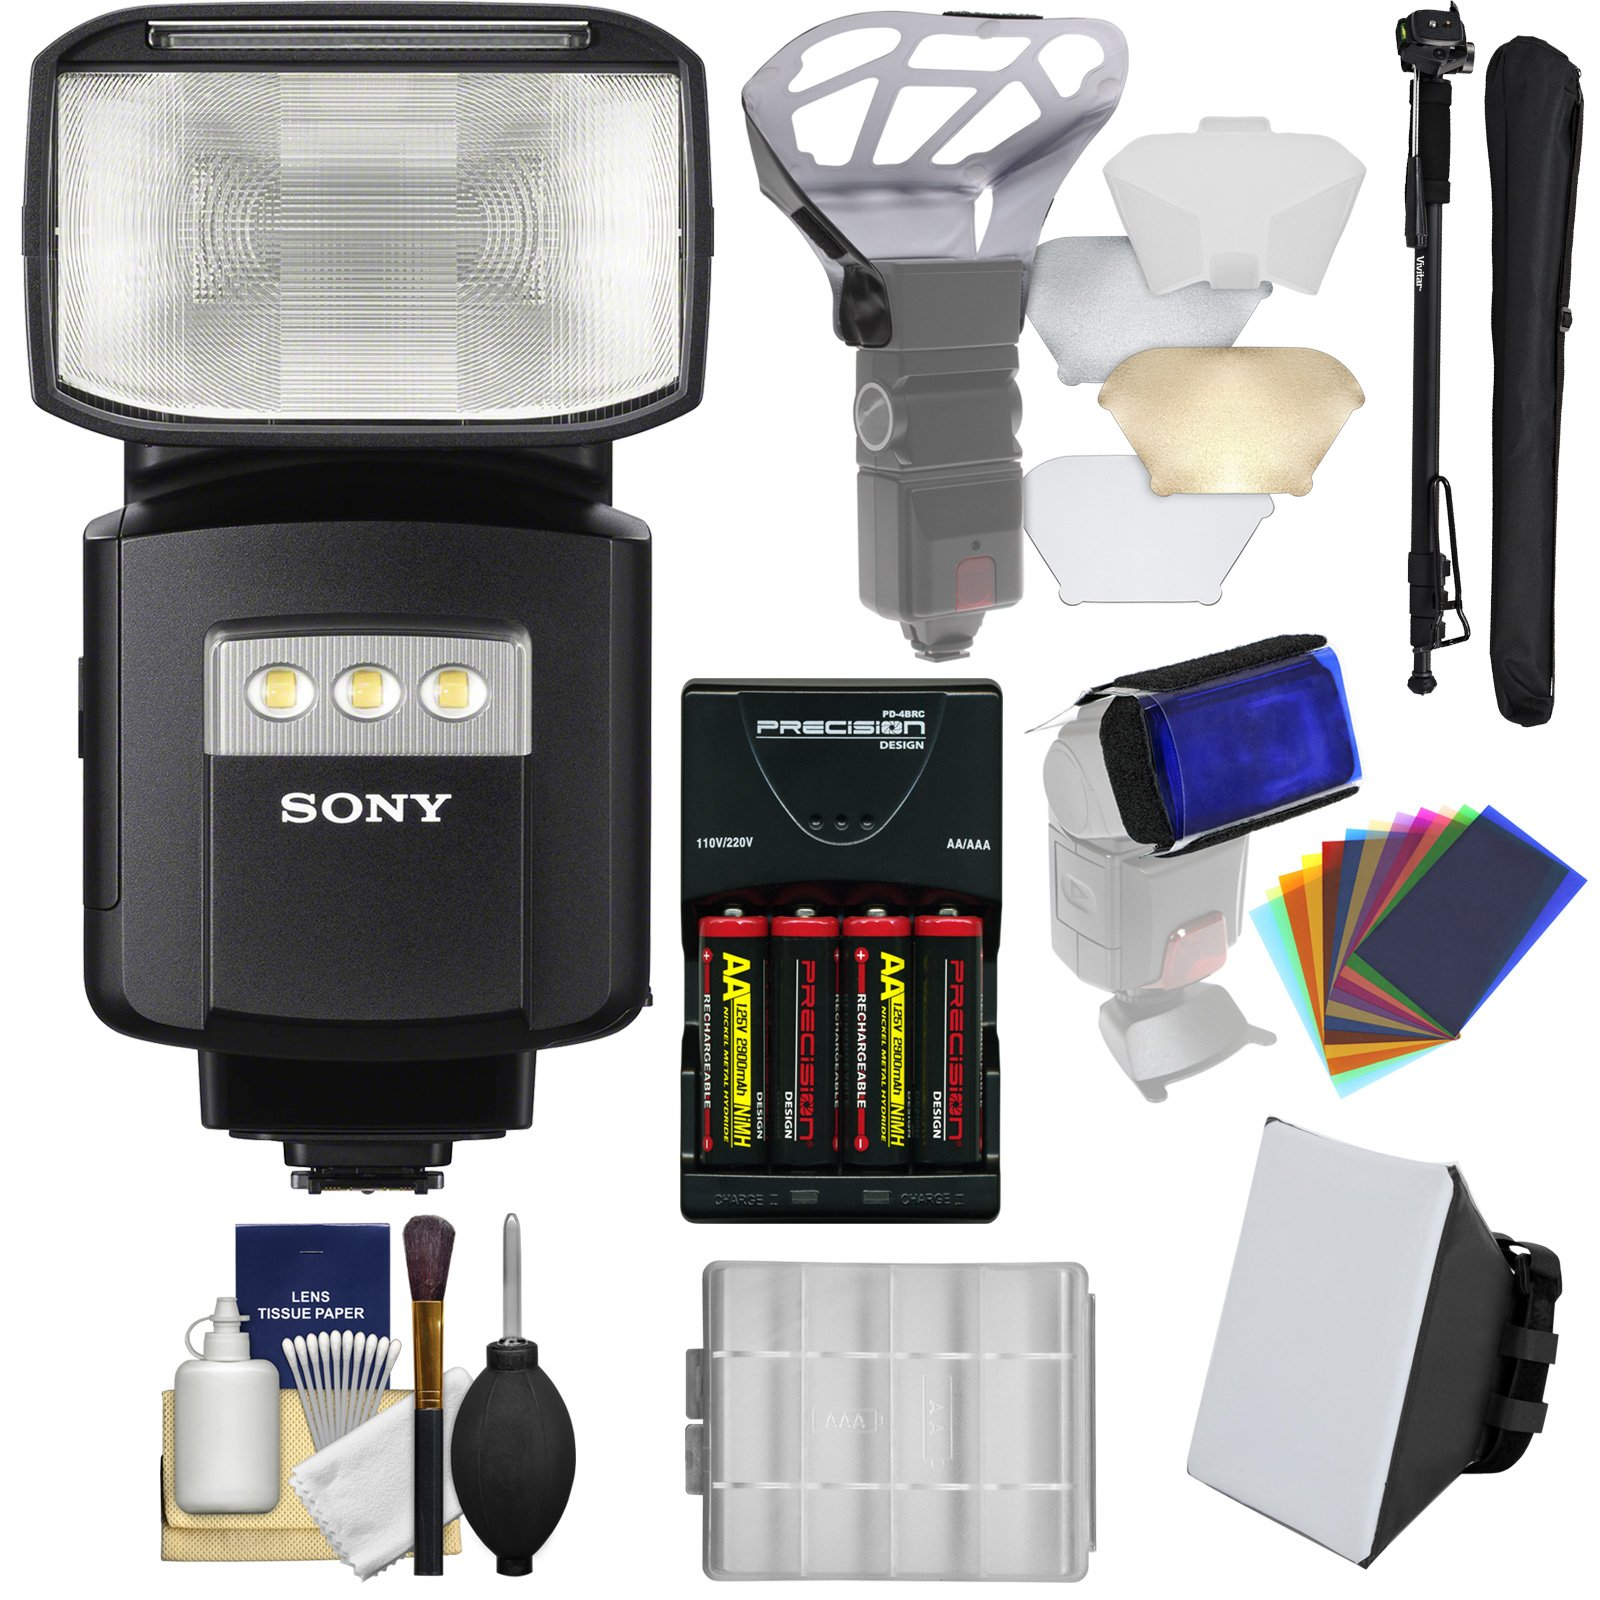 Sony Alpha HVL-F60RM Radio-Control Wireless Flash with Video Light + Soft Box + Bouncer + Color Gels + Batteries & Charger + Monopod Kit